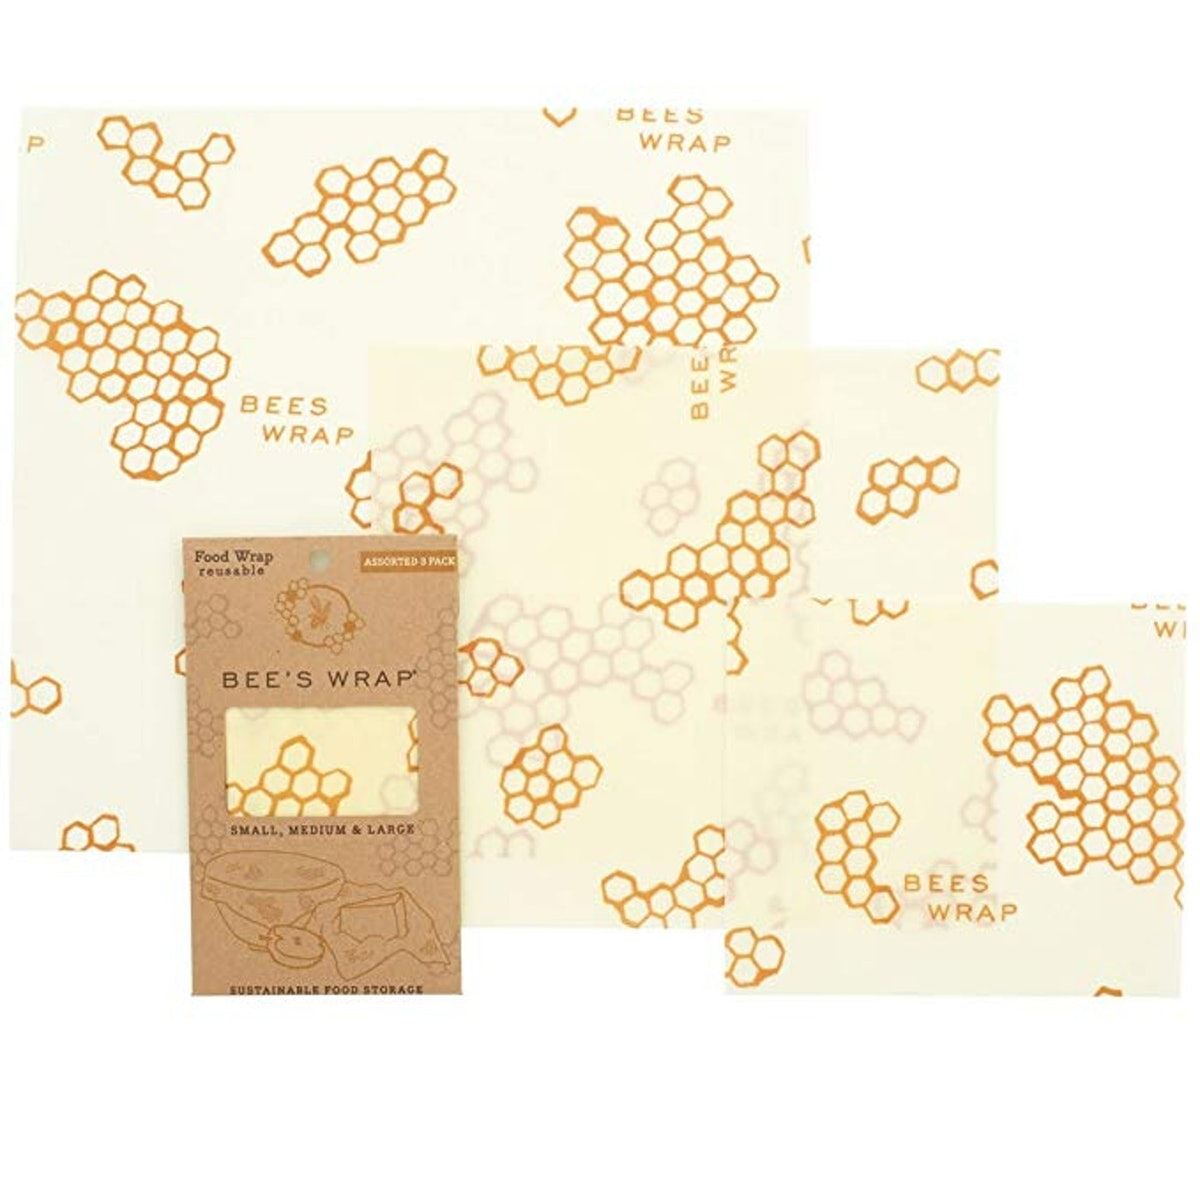 Bee's Wrap Eco Friendly Reusable Beeswax Food Wraps (3-Pack)